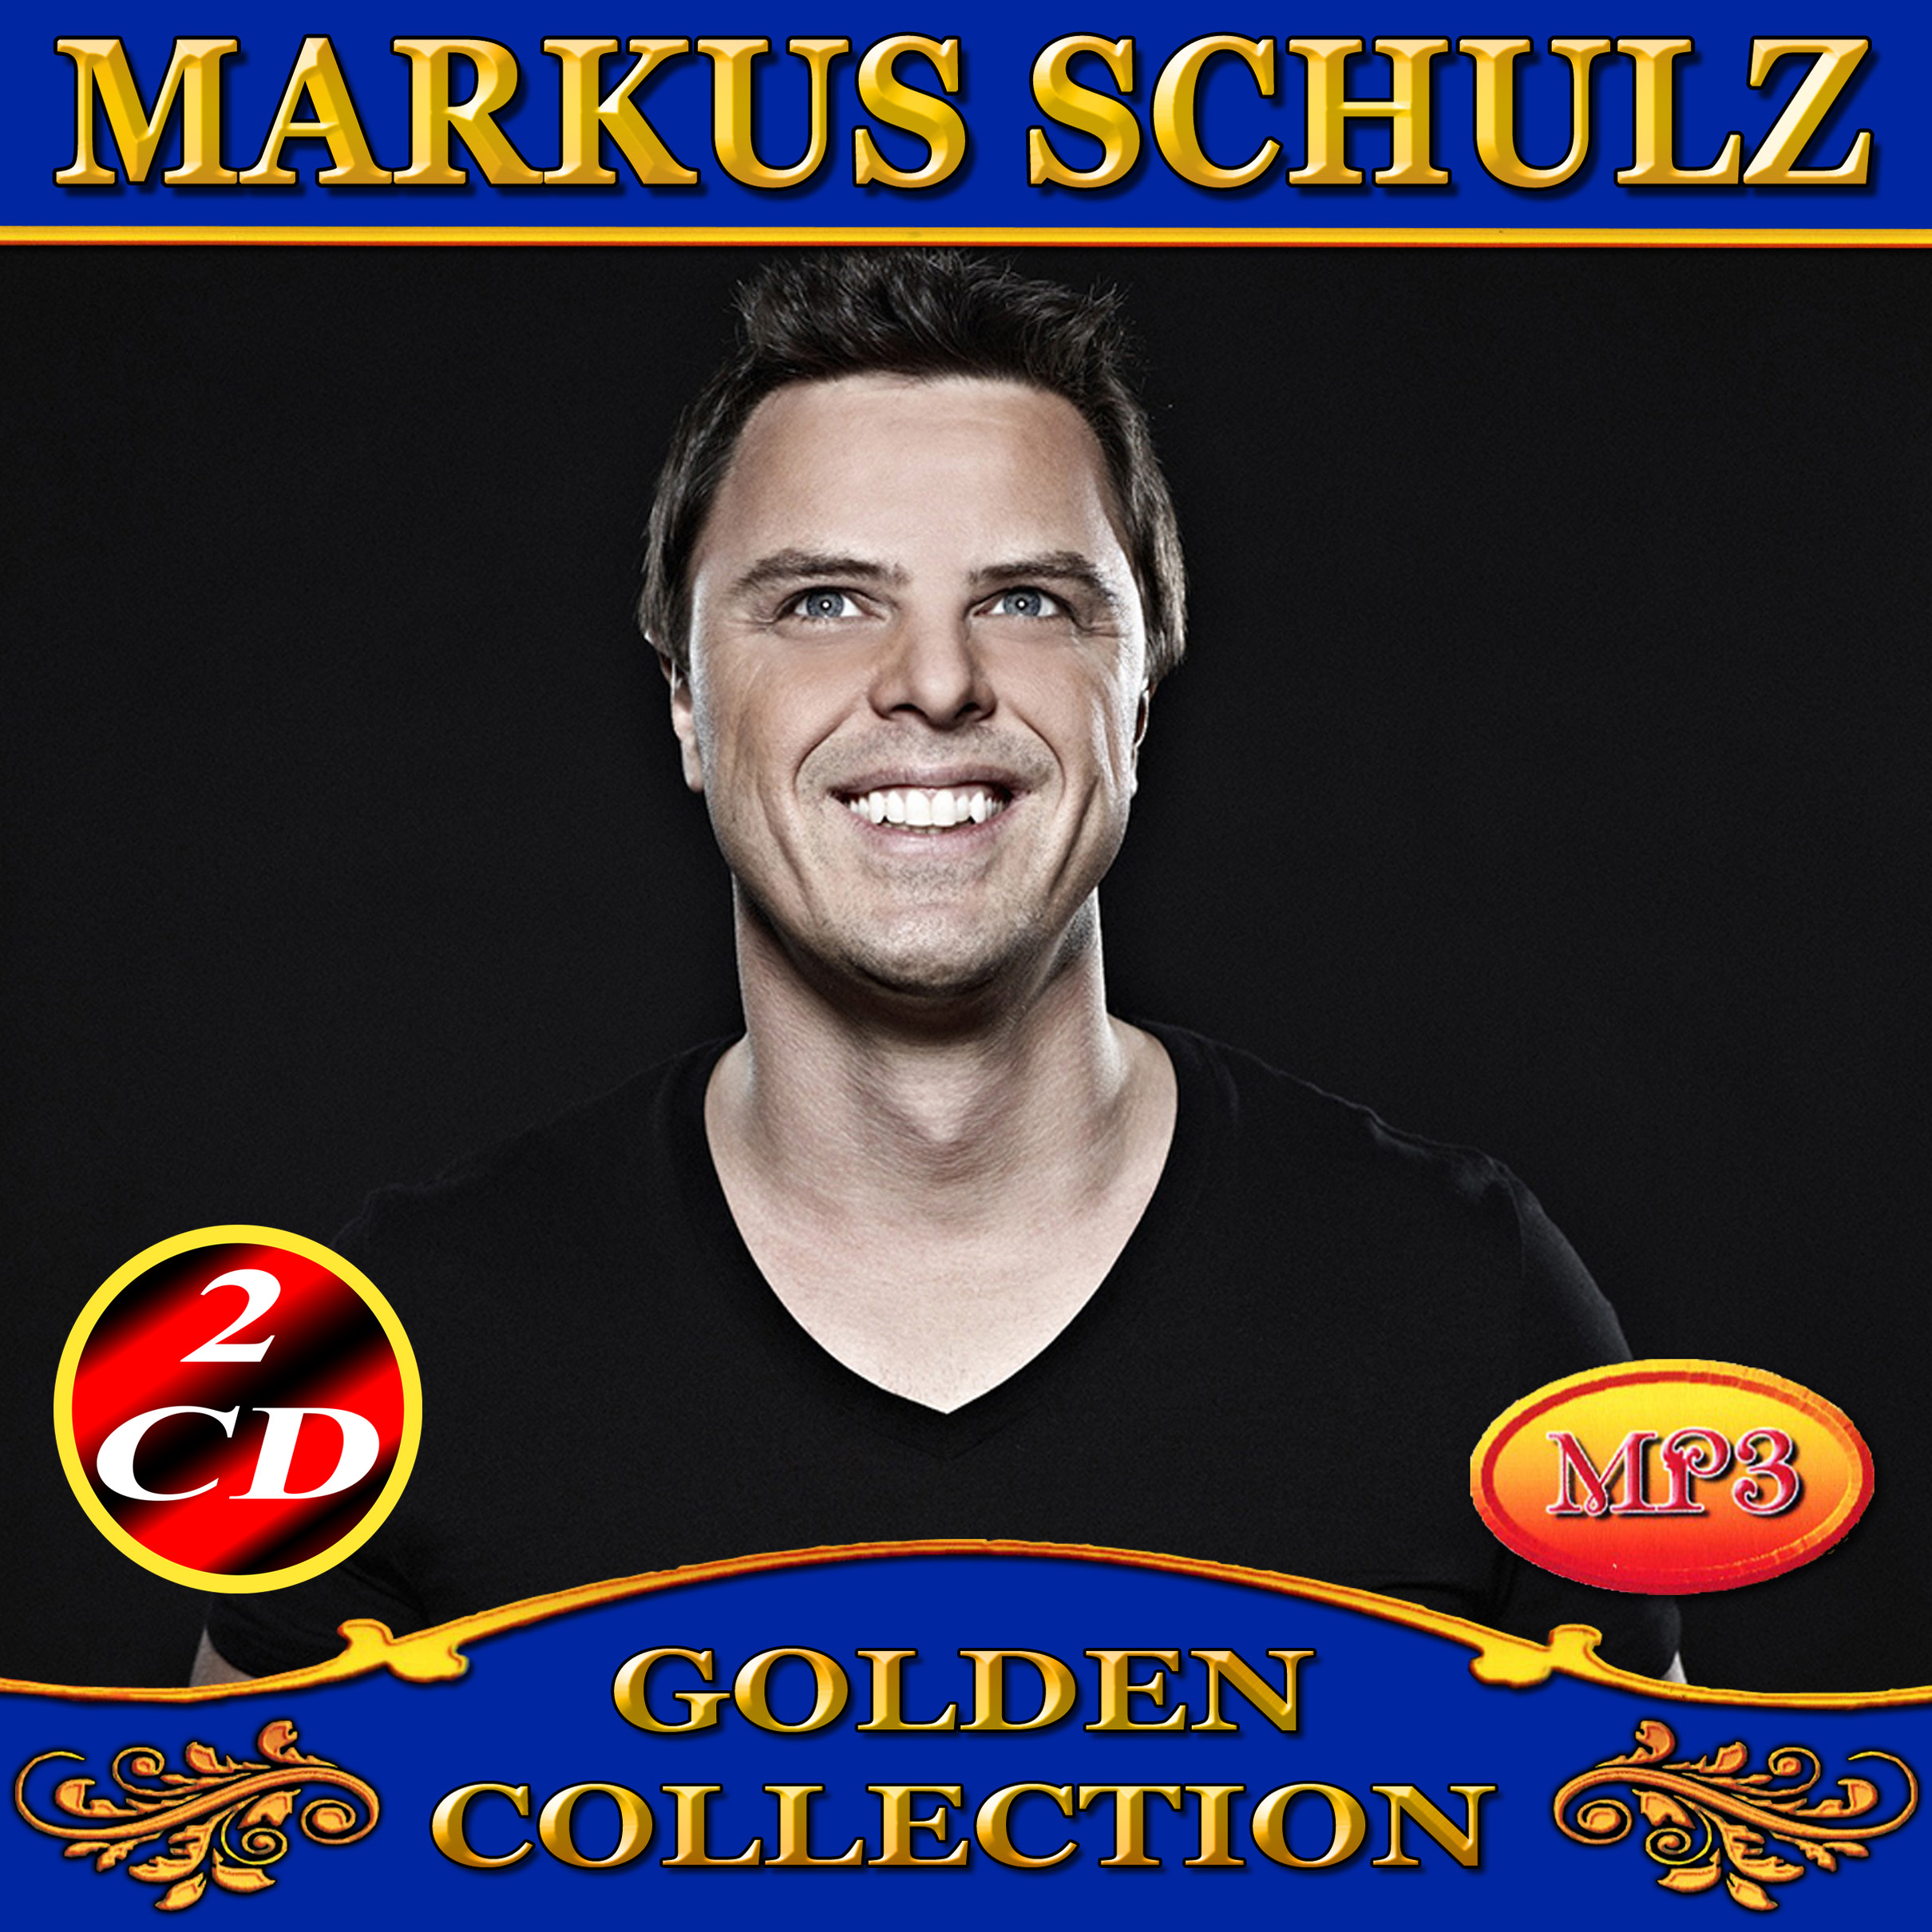 Markus Schulz 2cd [mp3]